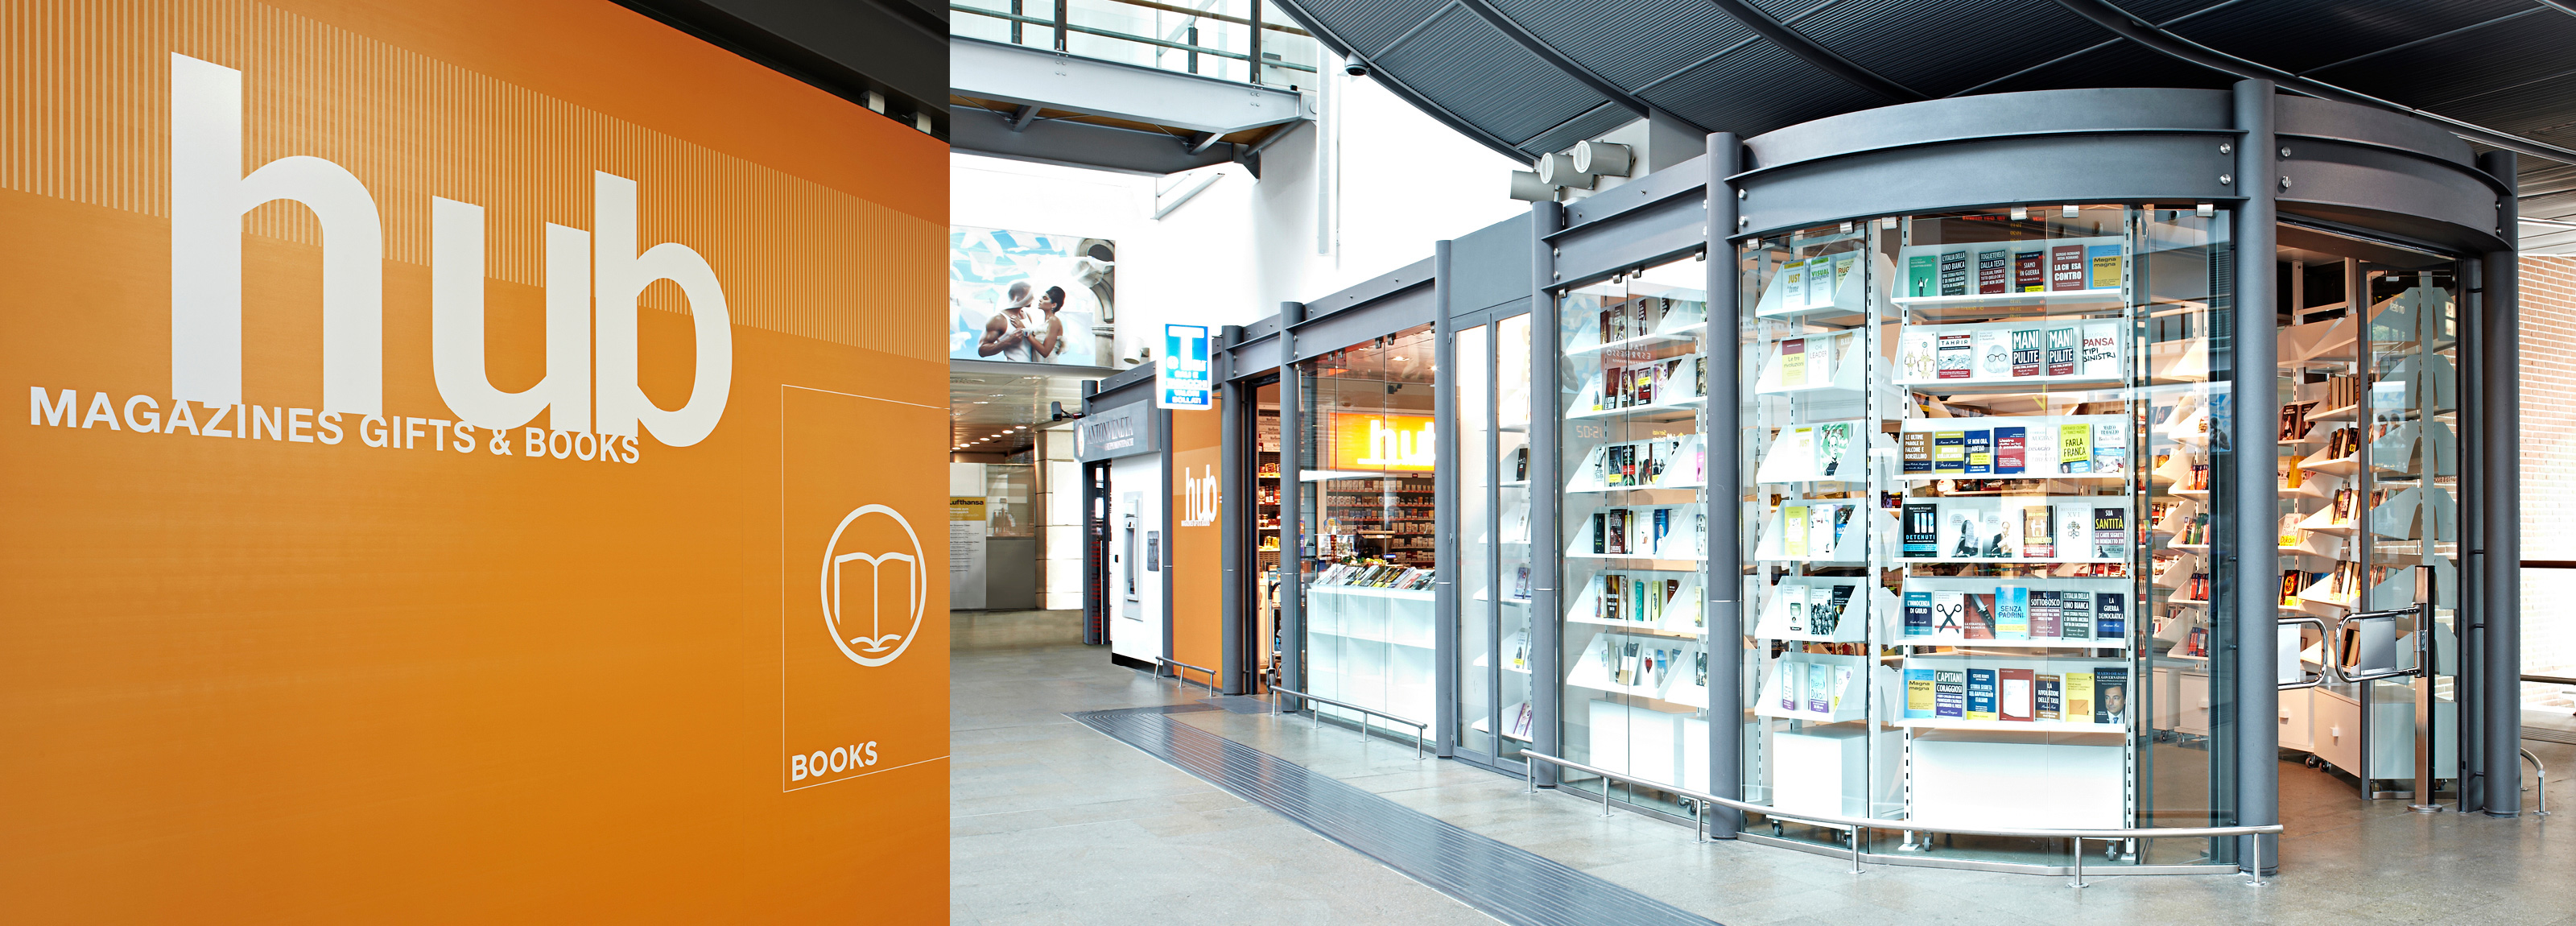 Airest Shop Design for Venice Airport   Hangar Design Group A contemporary look conceived of Hangar Design Group for the Hub shops  within the Venice Marco